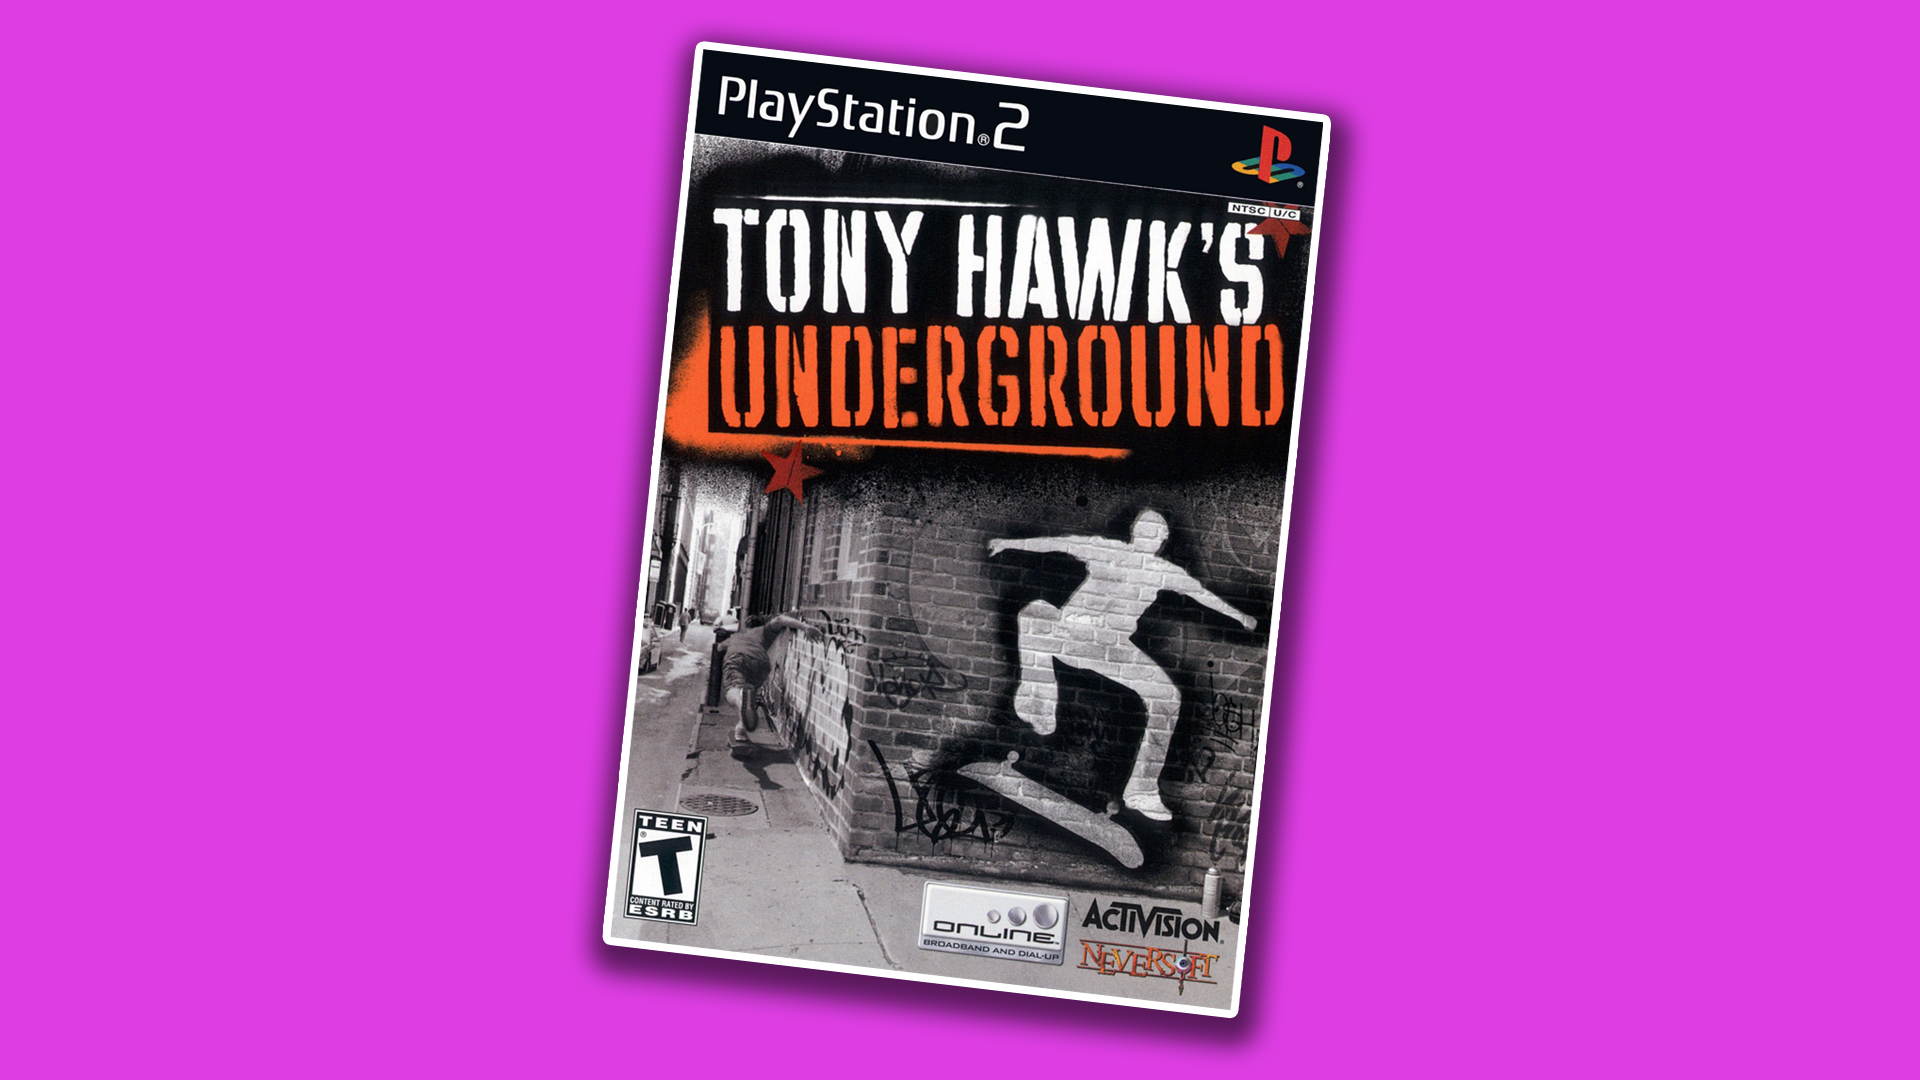 It's Time For A Tony Hawk's Underground Remake